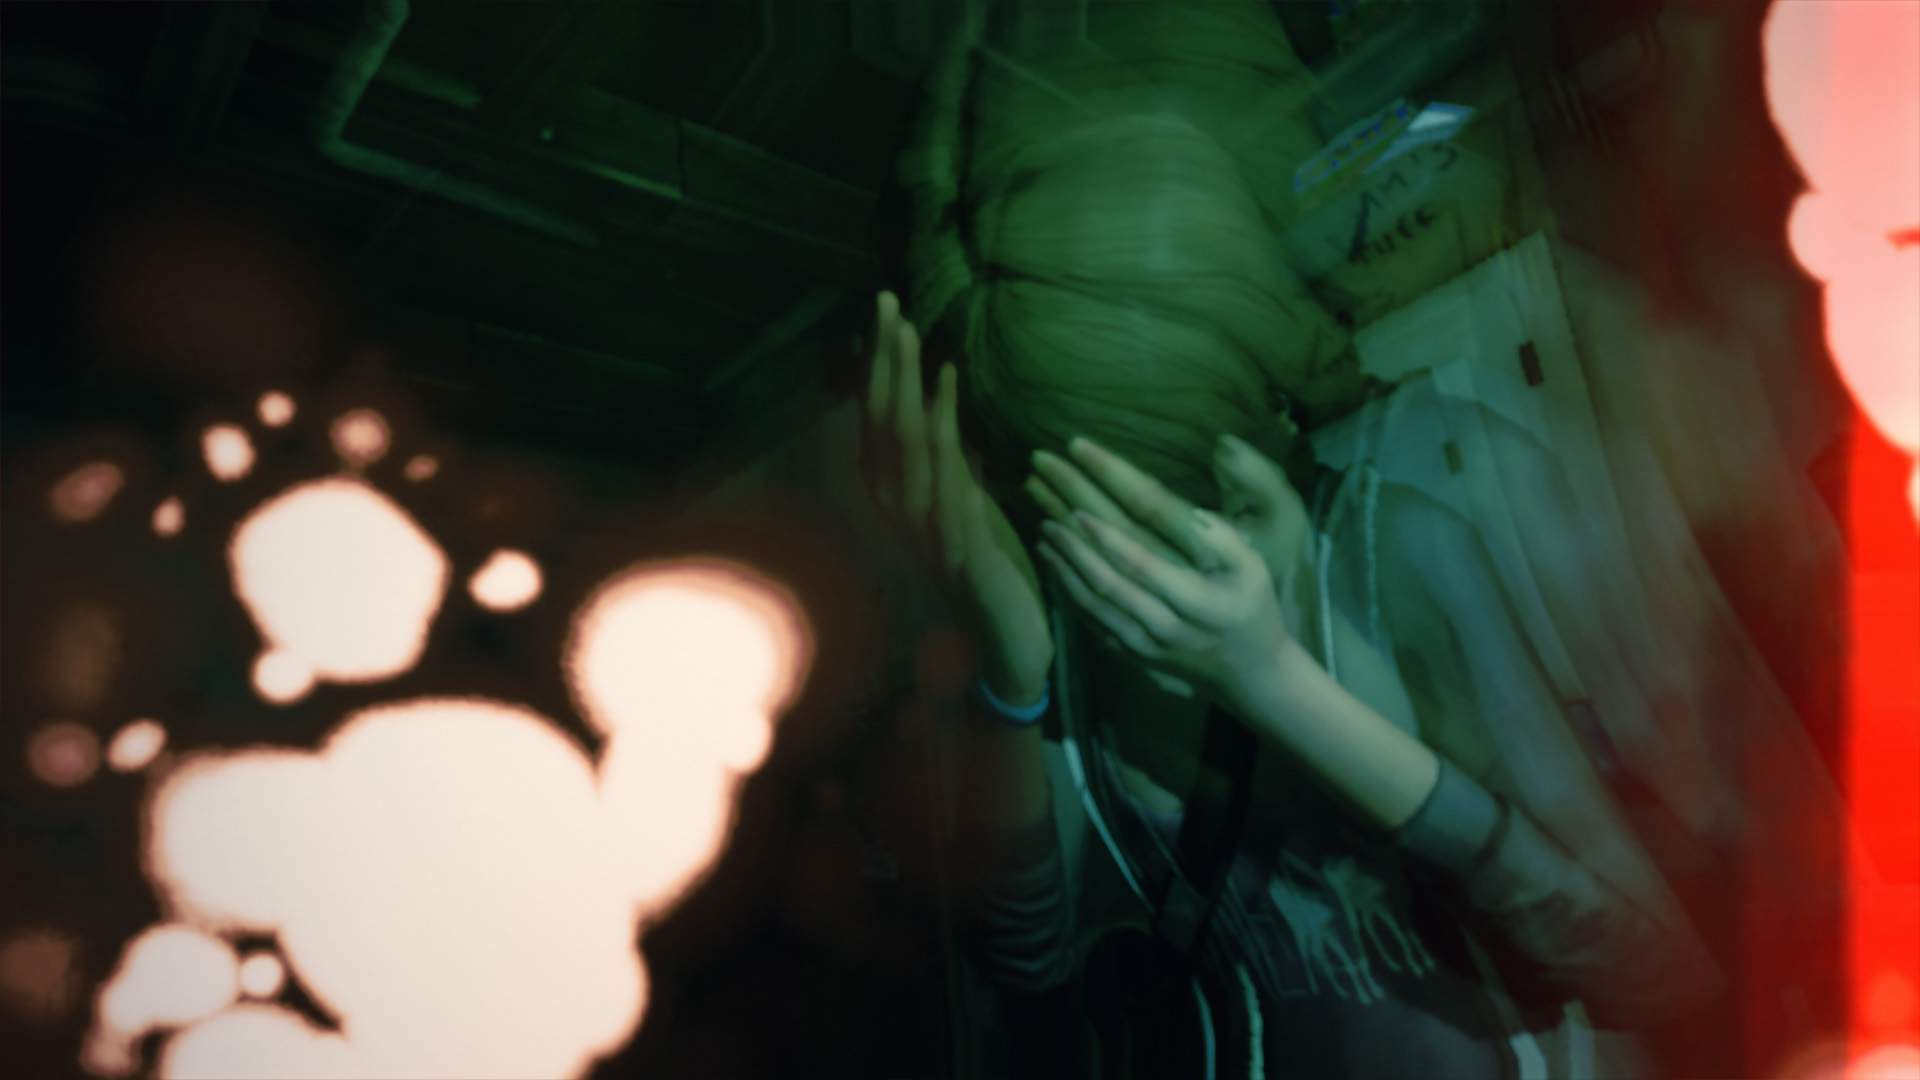 Max covers her eyes, in pain. Burn spots and double-exposures eat away at the image, which is coloured a sickly green.